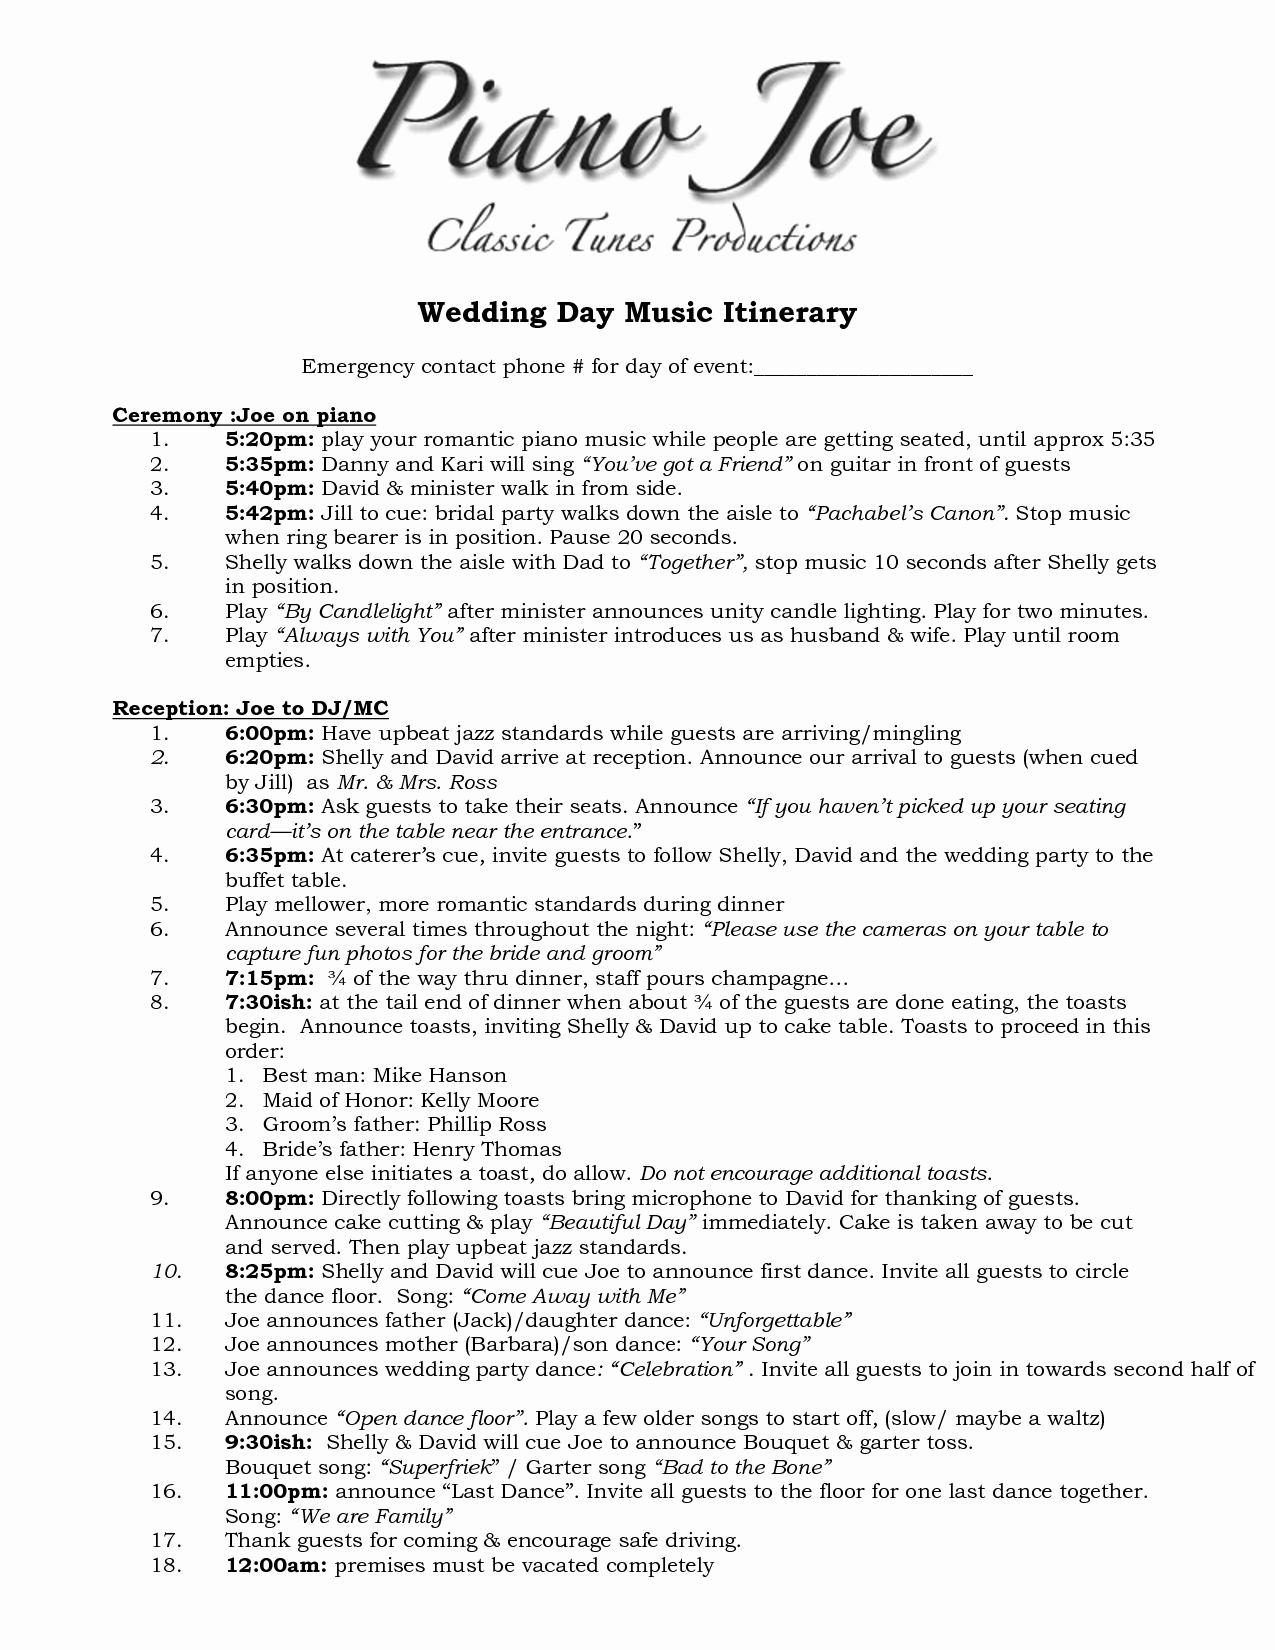 Wedding Itinerary Template Free Awesome Wedding Itinerary Templates Free 1275px